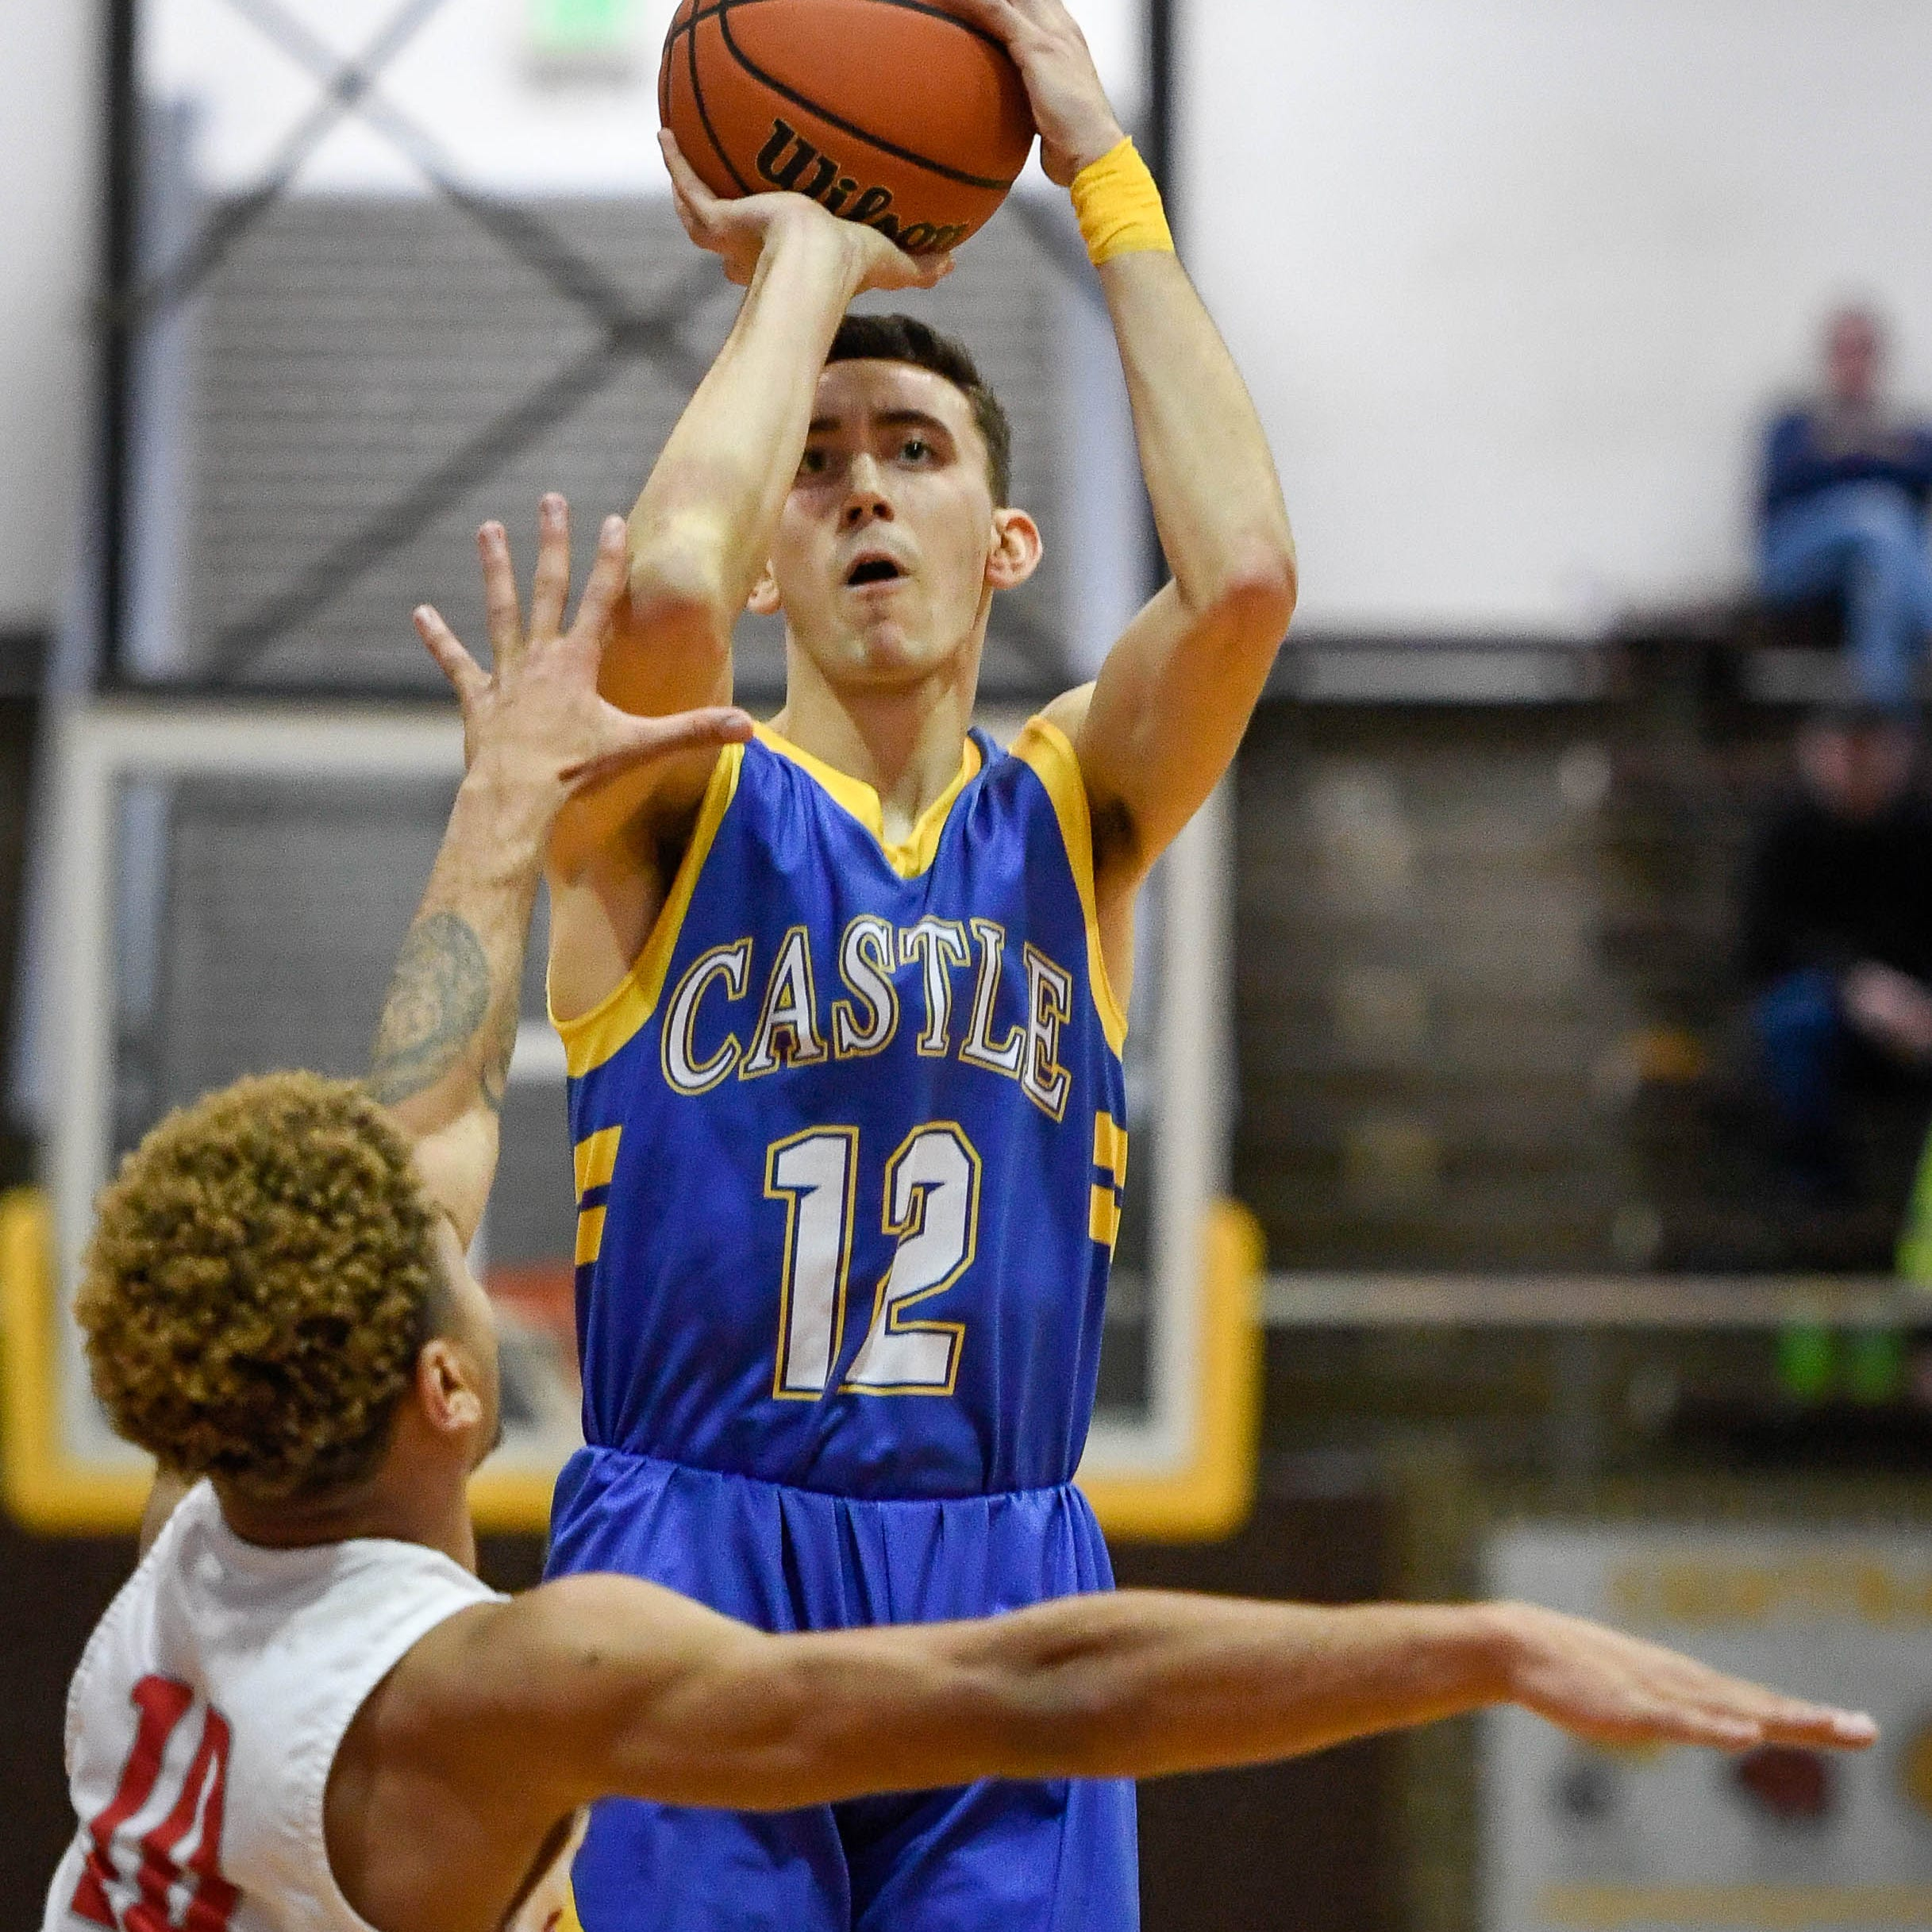 Castle's Alex Hemenway named second-team AP all-state